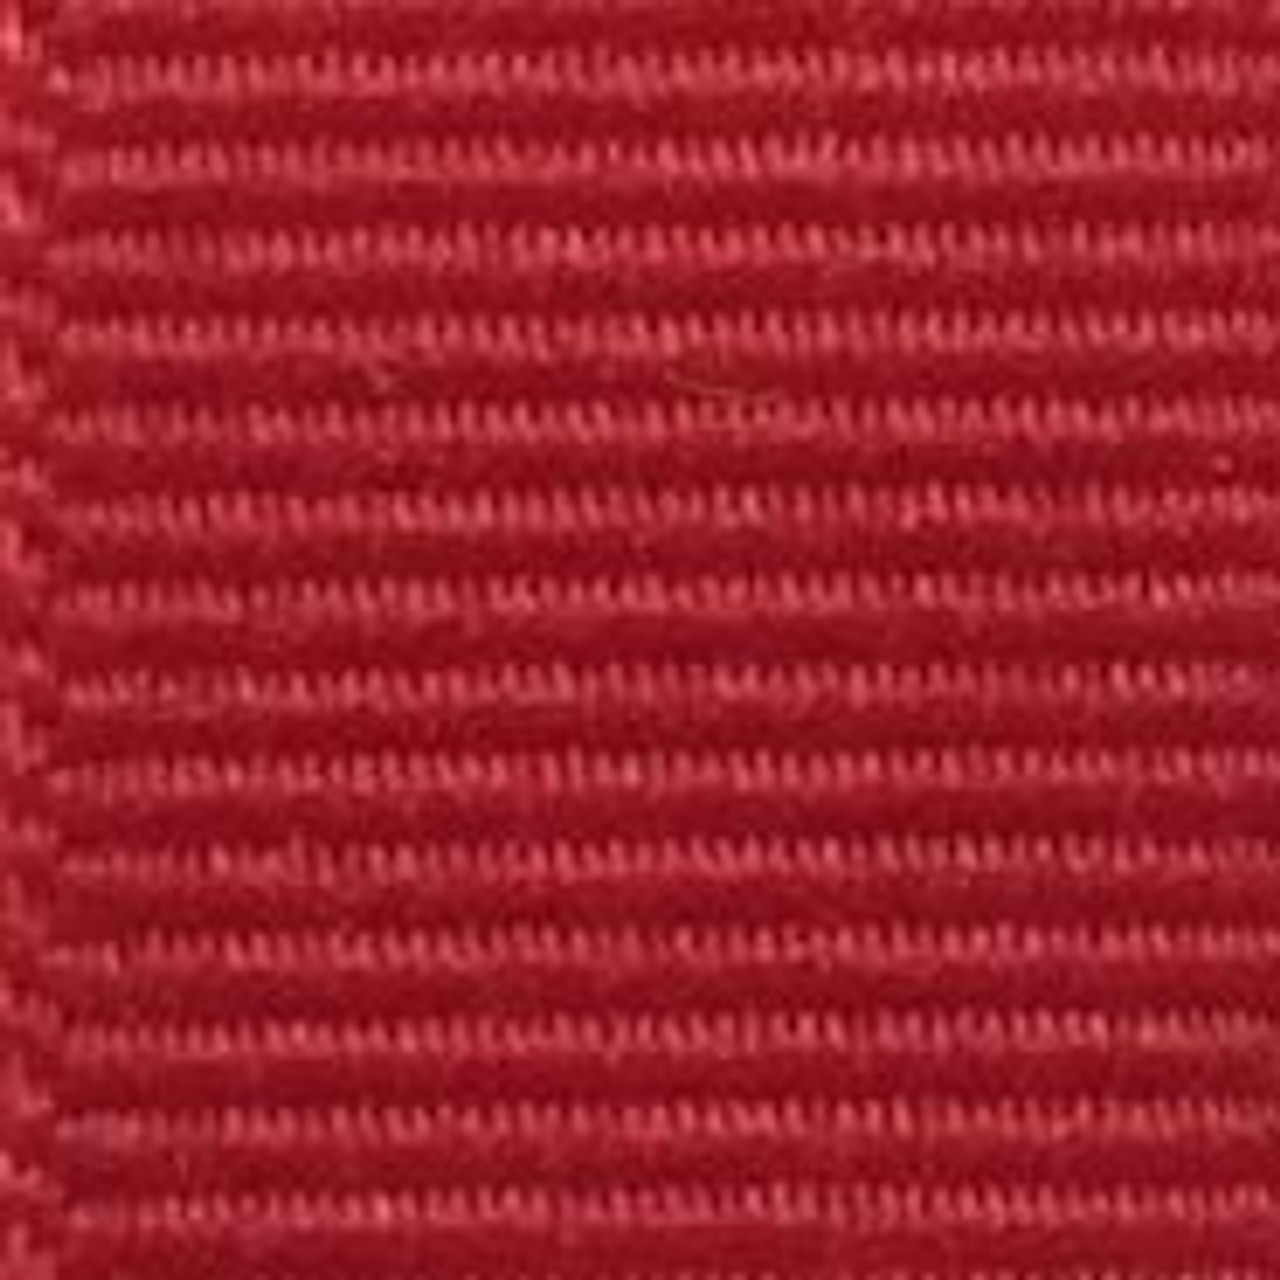 Red Offray Grosgrain Ribbon